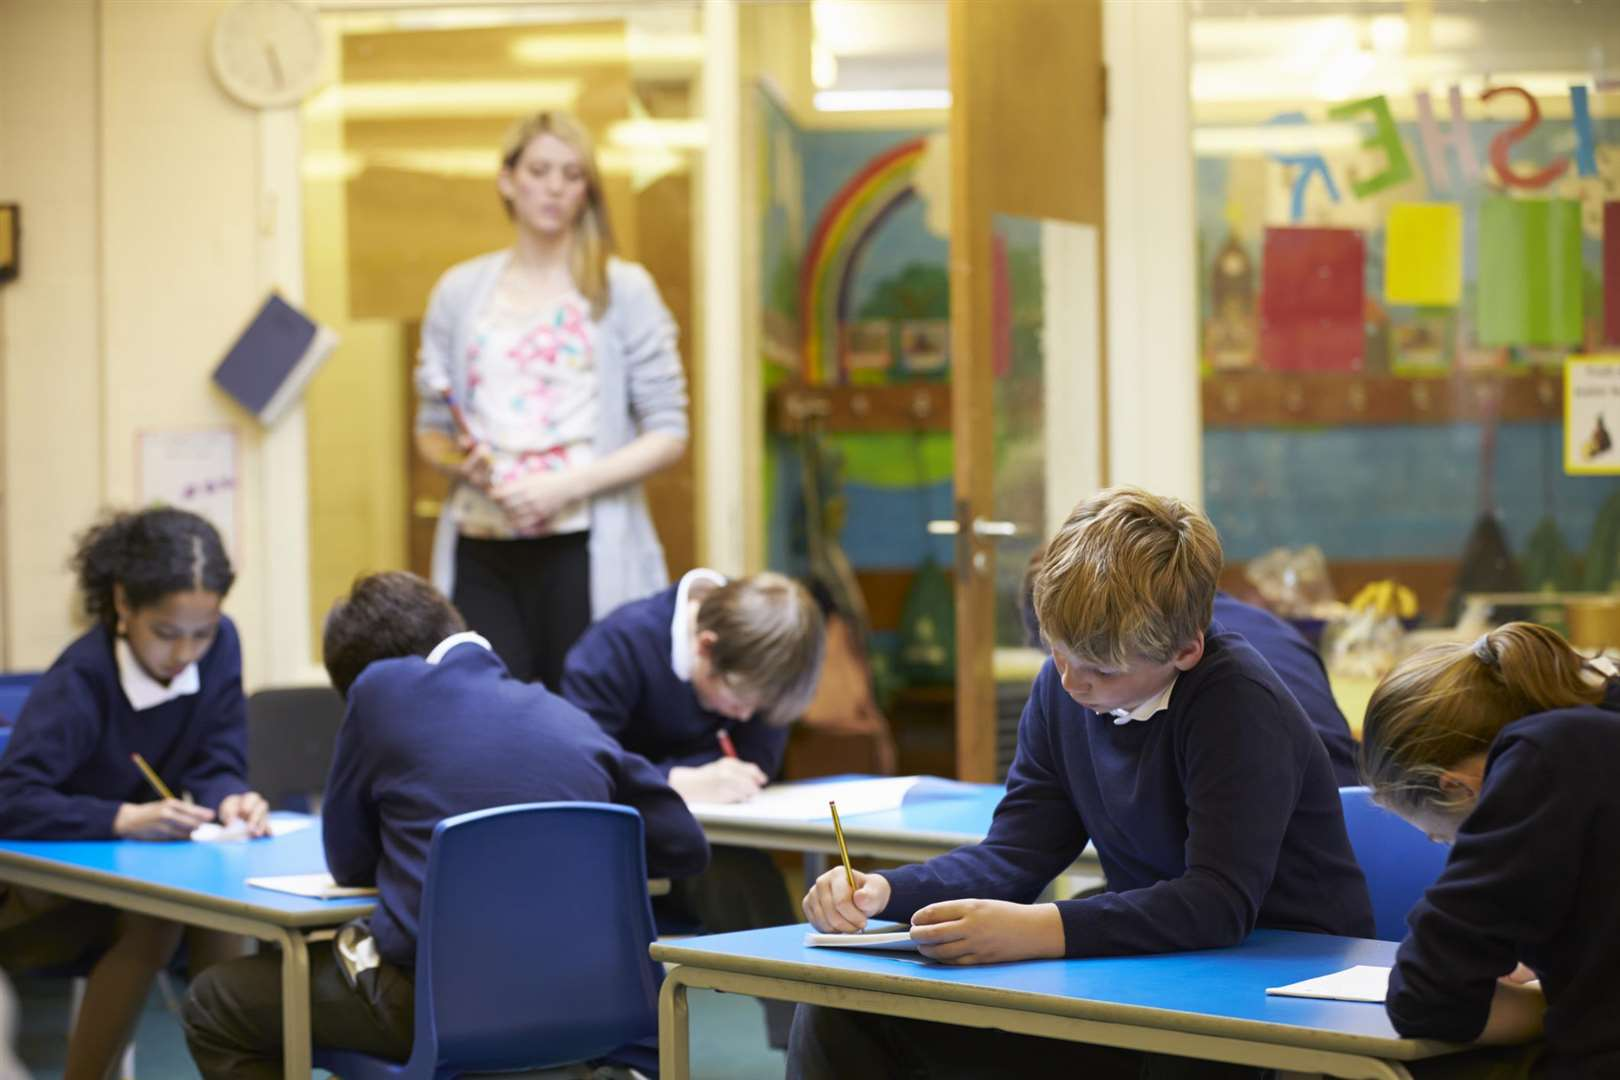 Among the applications will be thousands for grammar school places in Kent and Medway